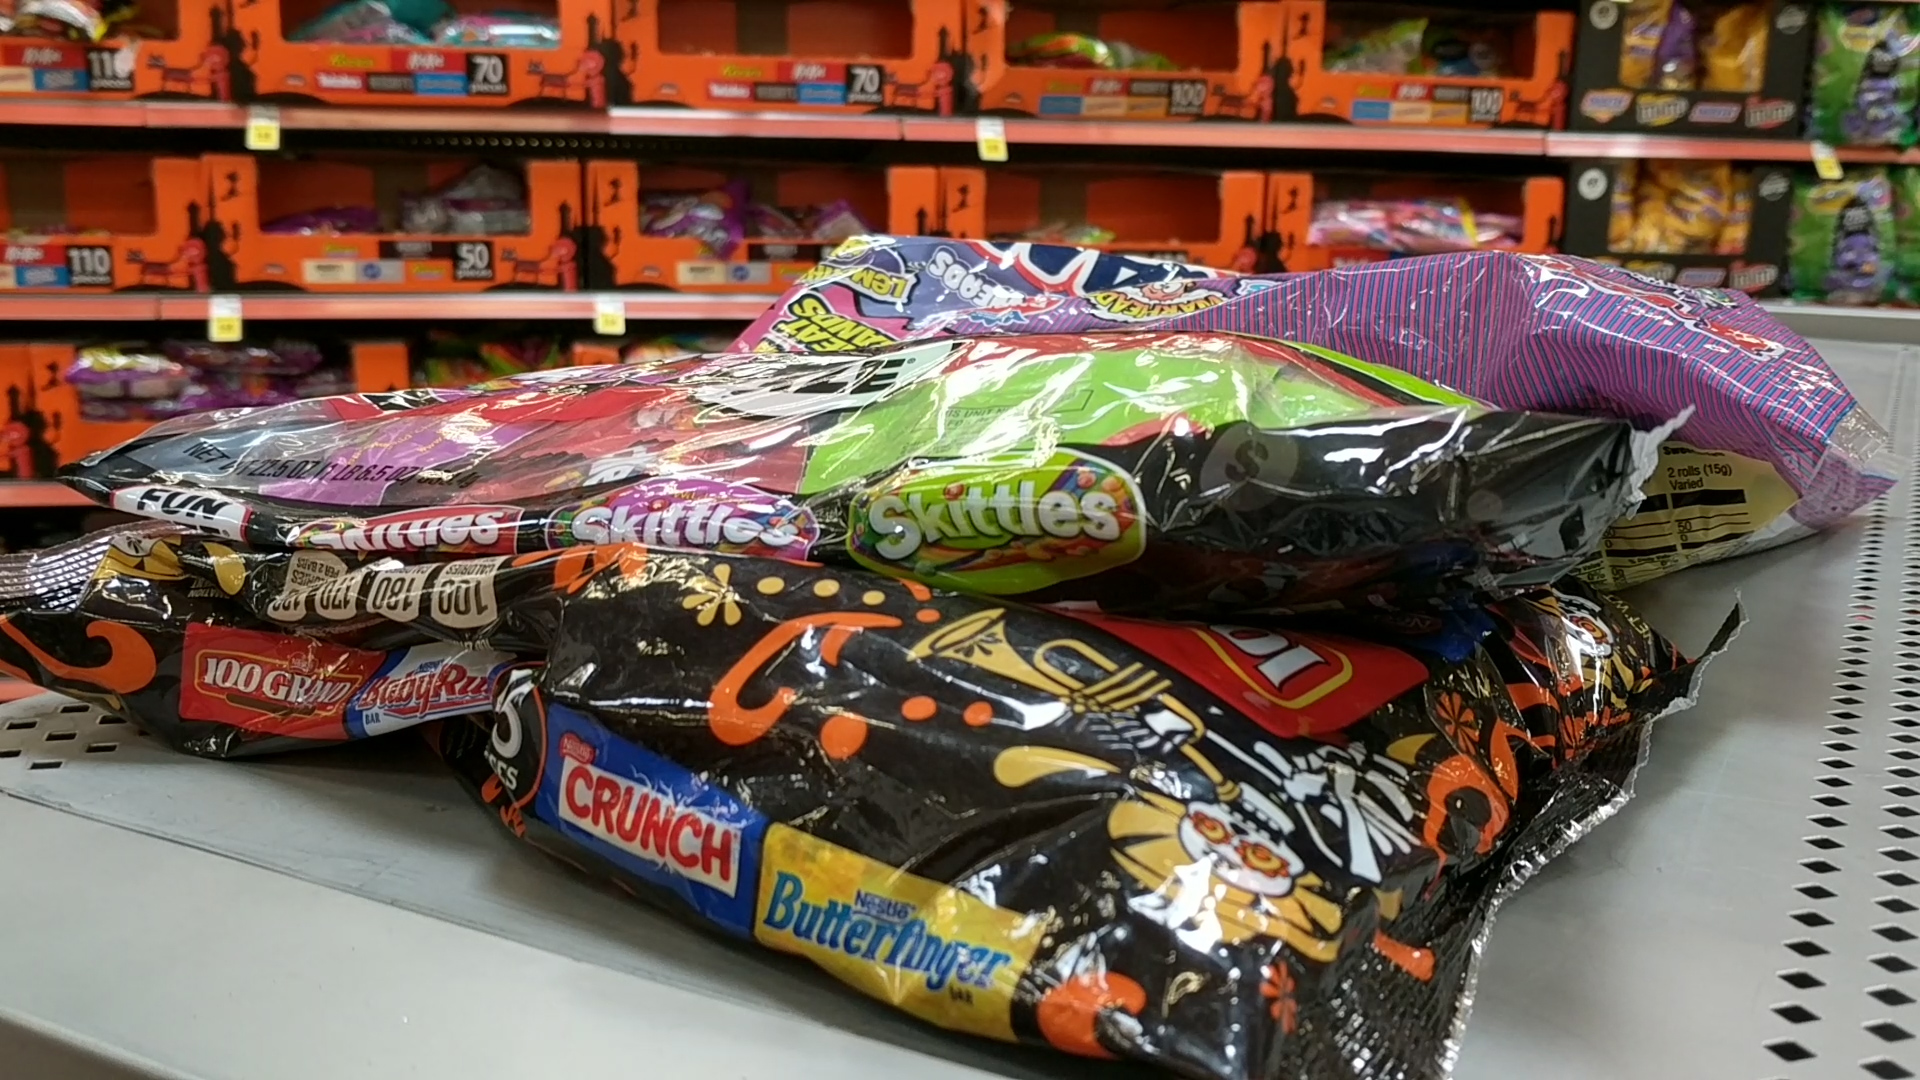 21/09/2020· big halloween candy bags as low as $6.31! Where To Find The Lowest Priced Halloween Candy